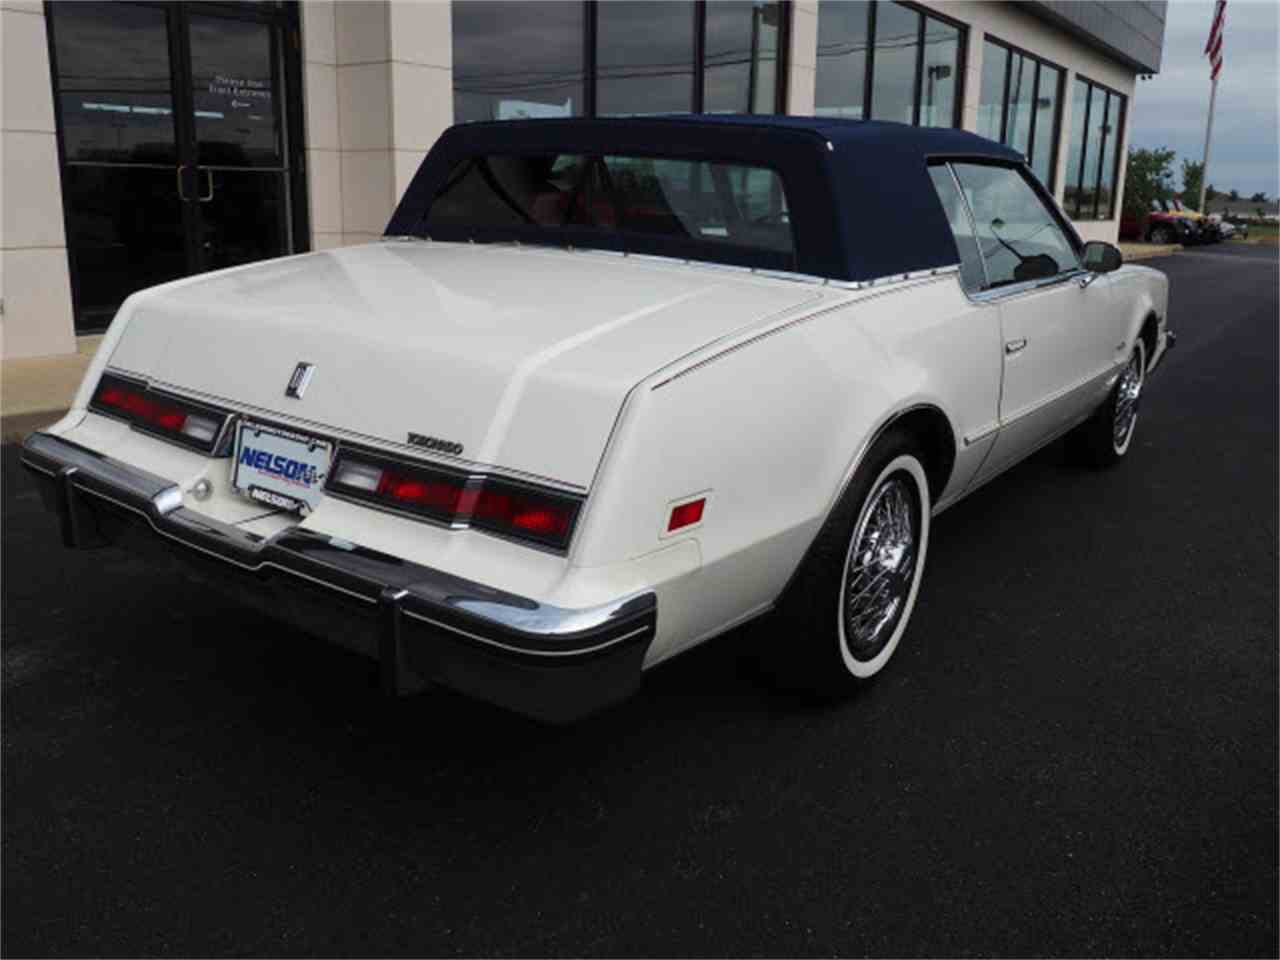 Large Picture of '85 Oldsmobile Toronado located in Marysville Ohio - $15,999.00 Offered by Nelson Automotive, Ltd. - LUQO